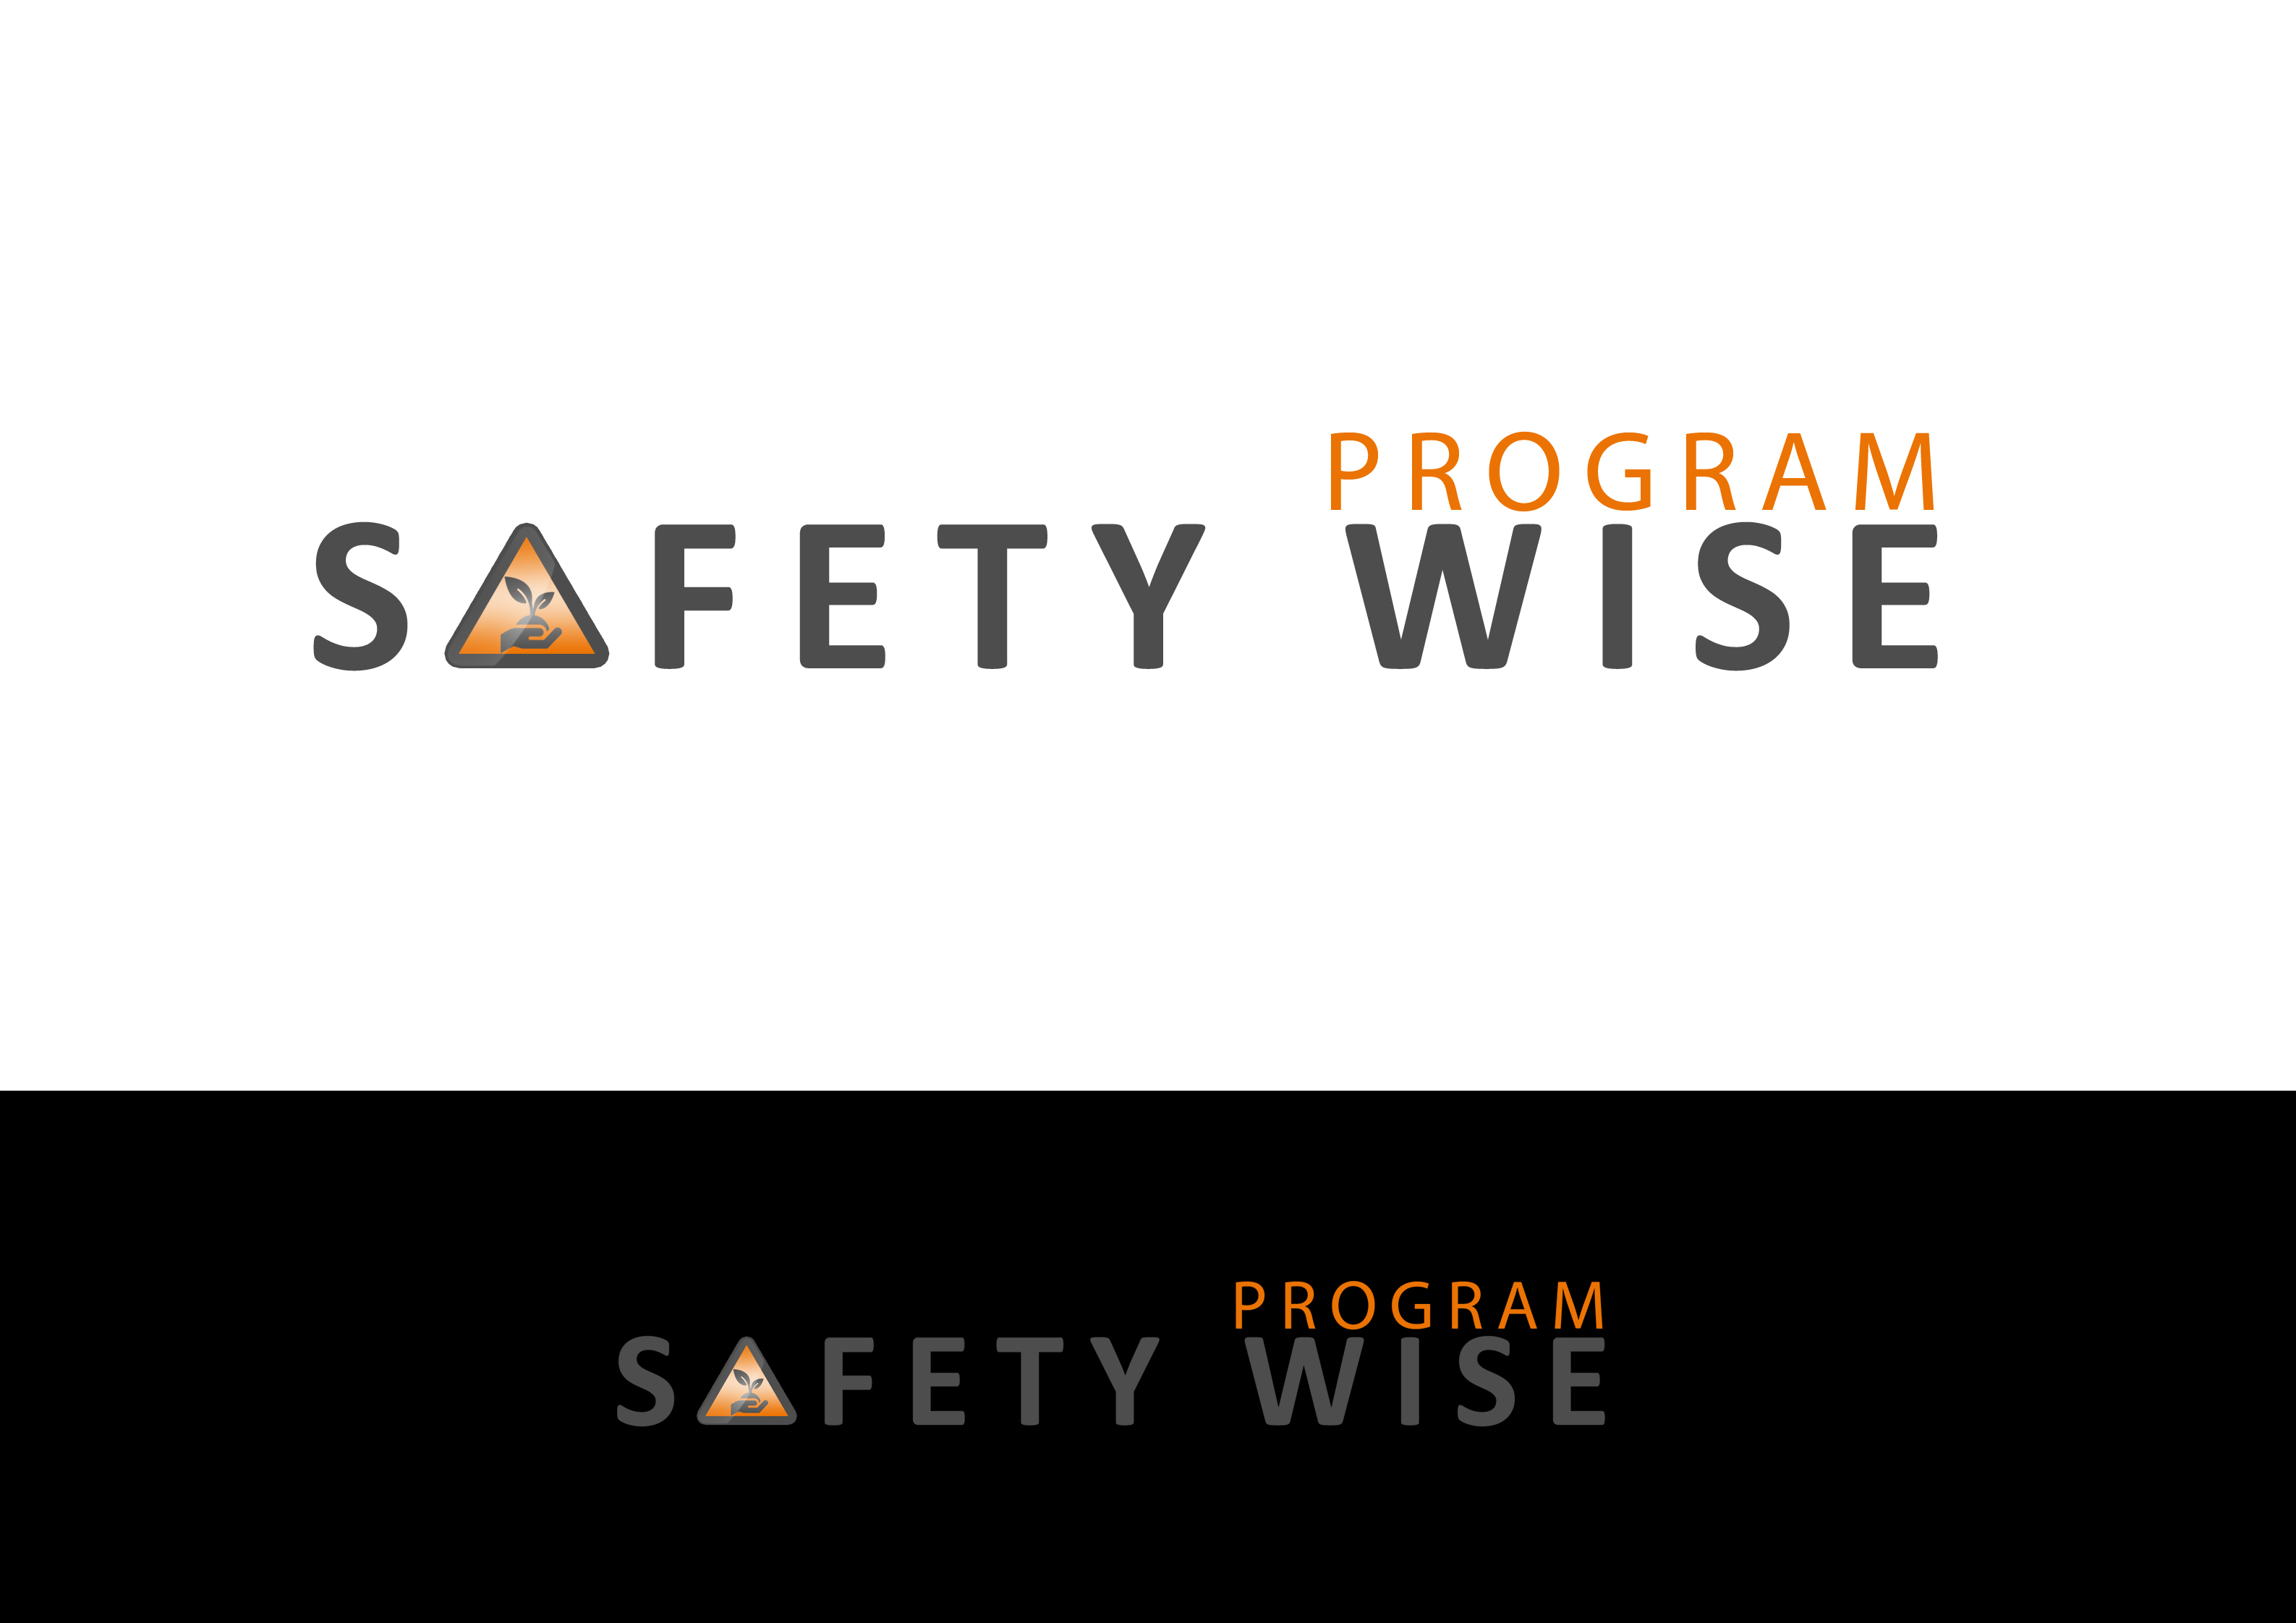 Logo Design by JSDESIGNGROUP - Entry No. 198 in the Logo Design Contest New Logo Design for Safety Wise Program.